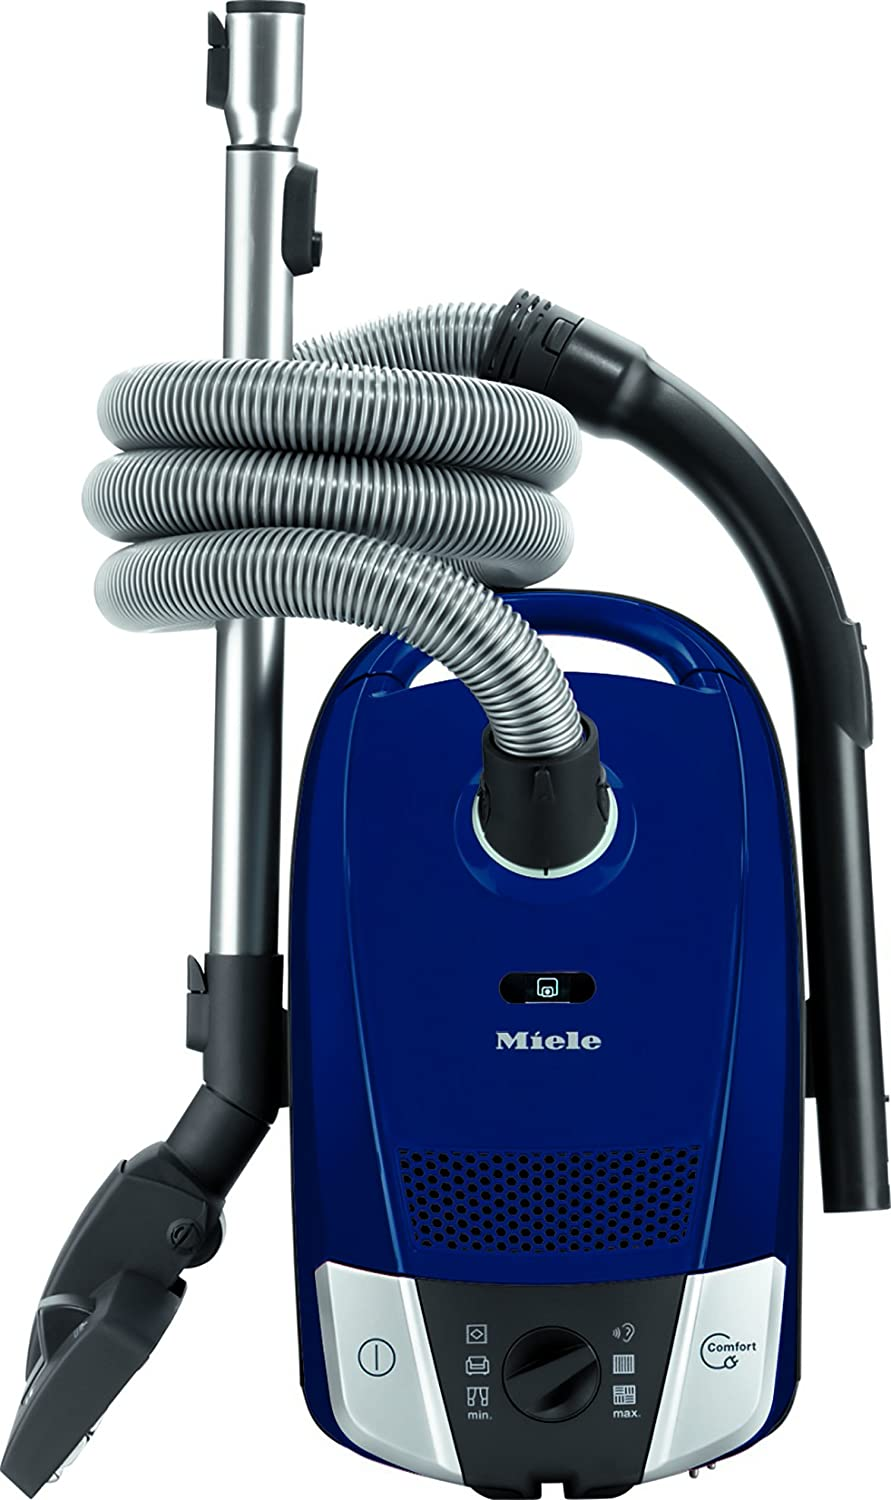 Miele Compact C2 PowerLine Bagged Vacuum Cleaner [Energy Class C] 10660690